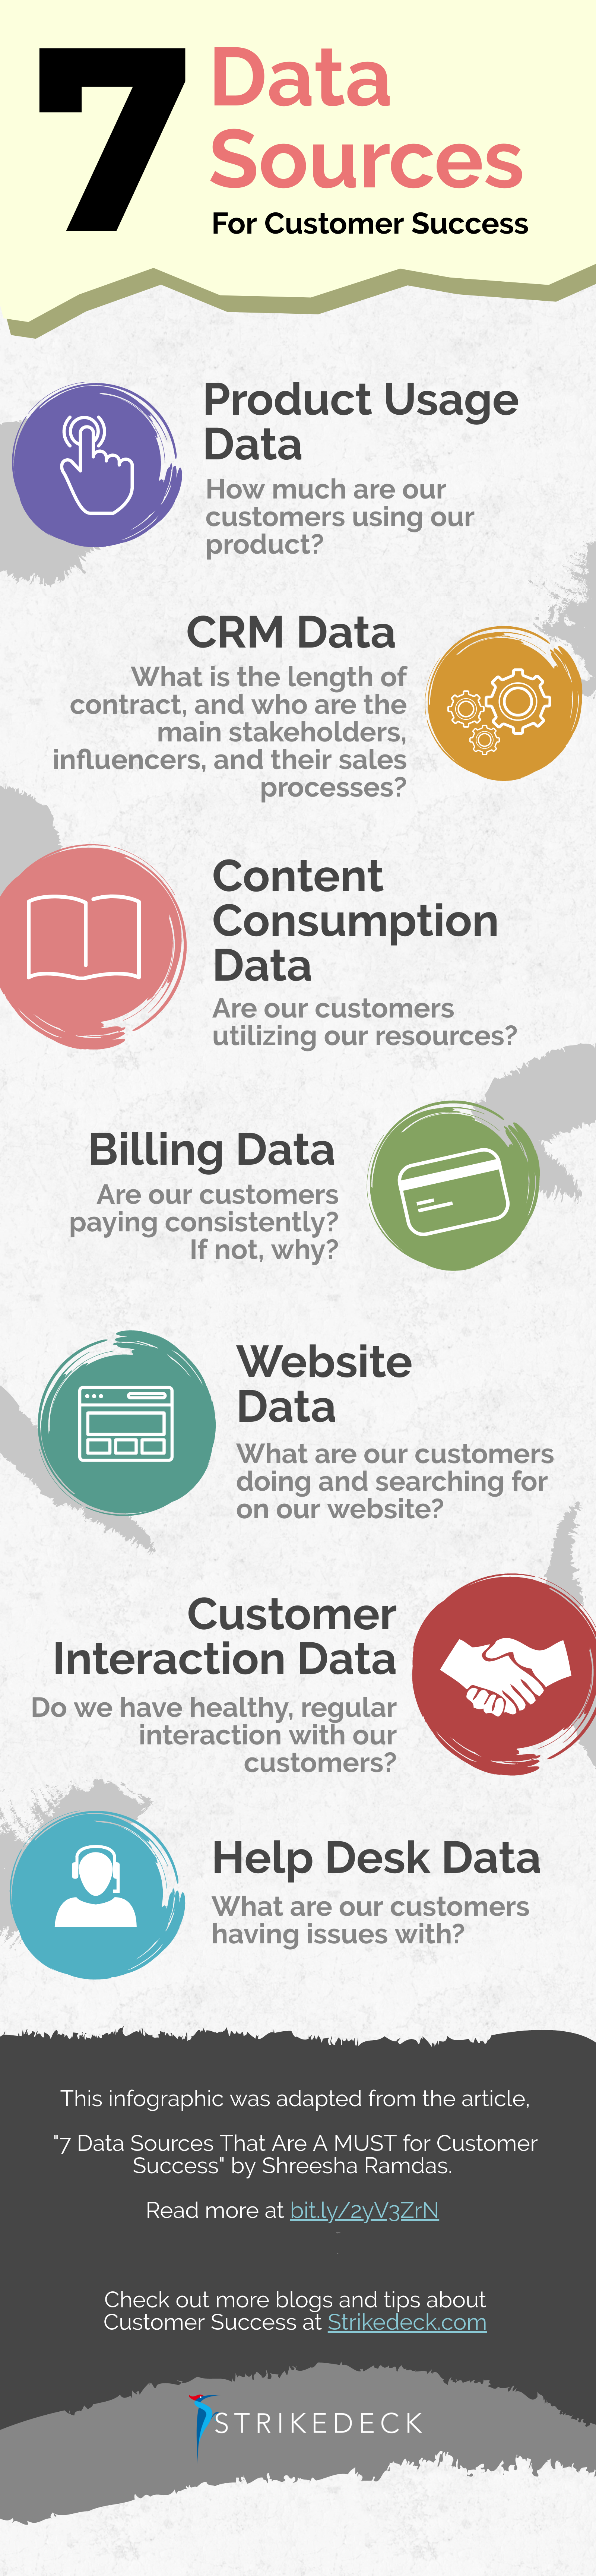 Data Sources for Customer Success